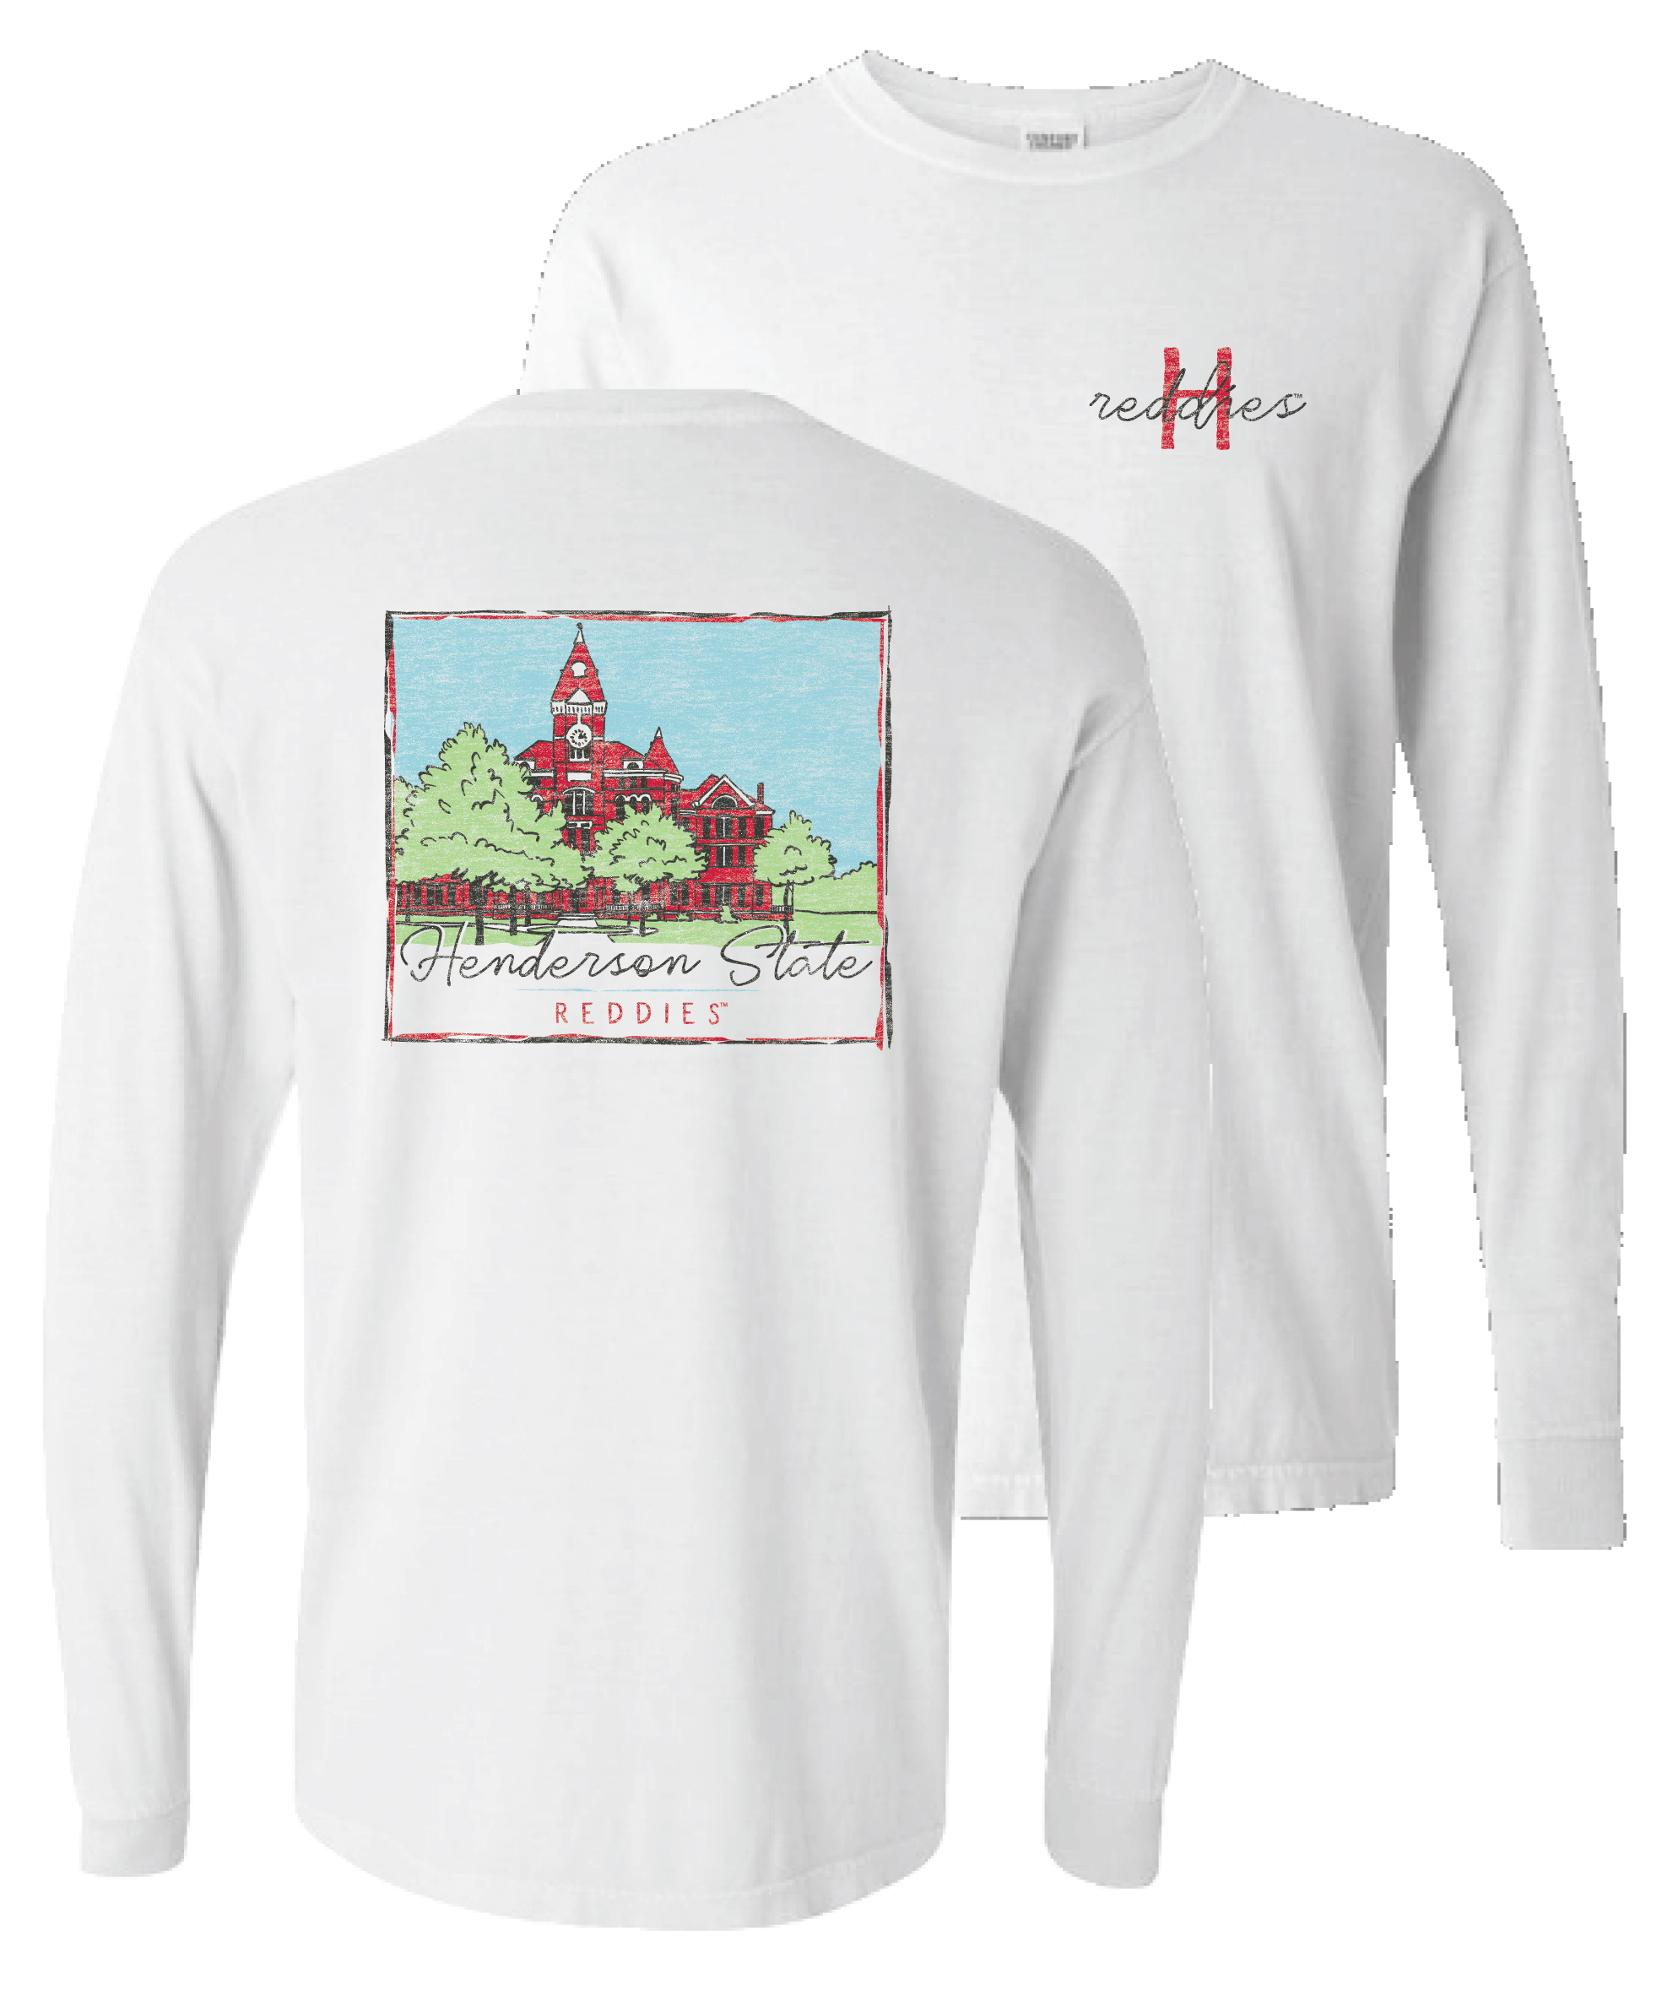 image of: Henderson State Reddies Old Main Comfort Colors Long Sleeve T-Shirt